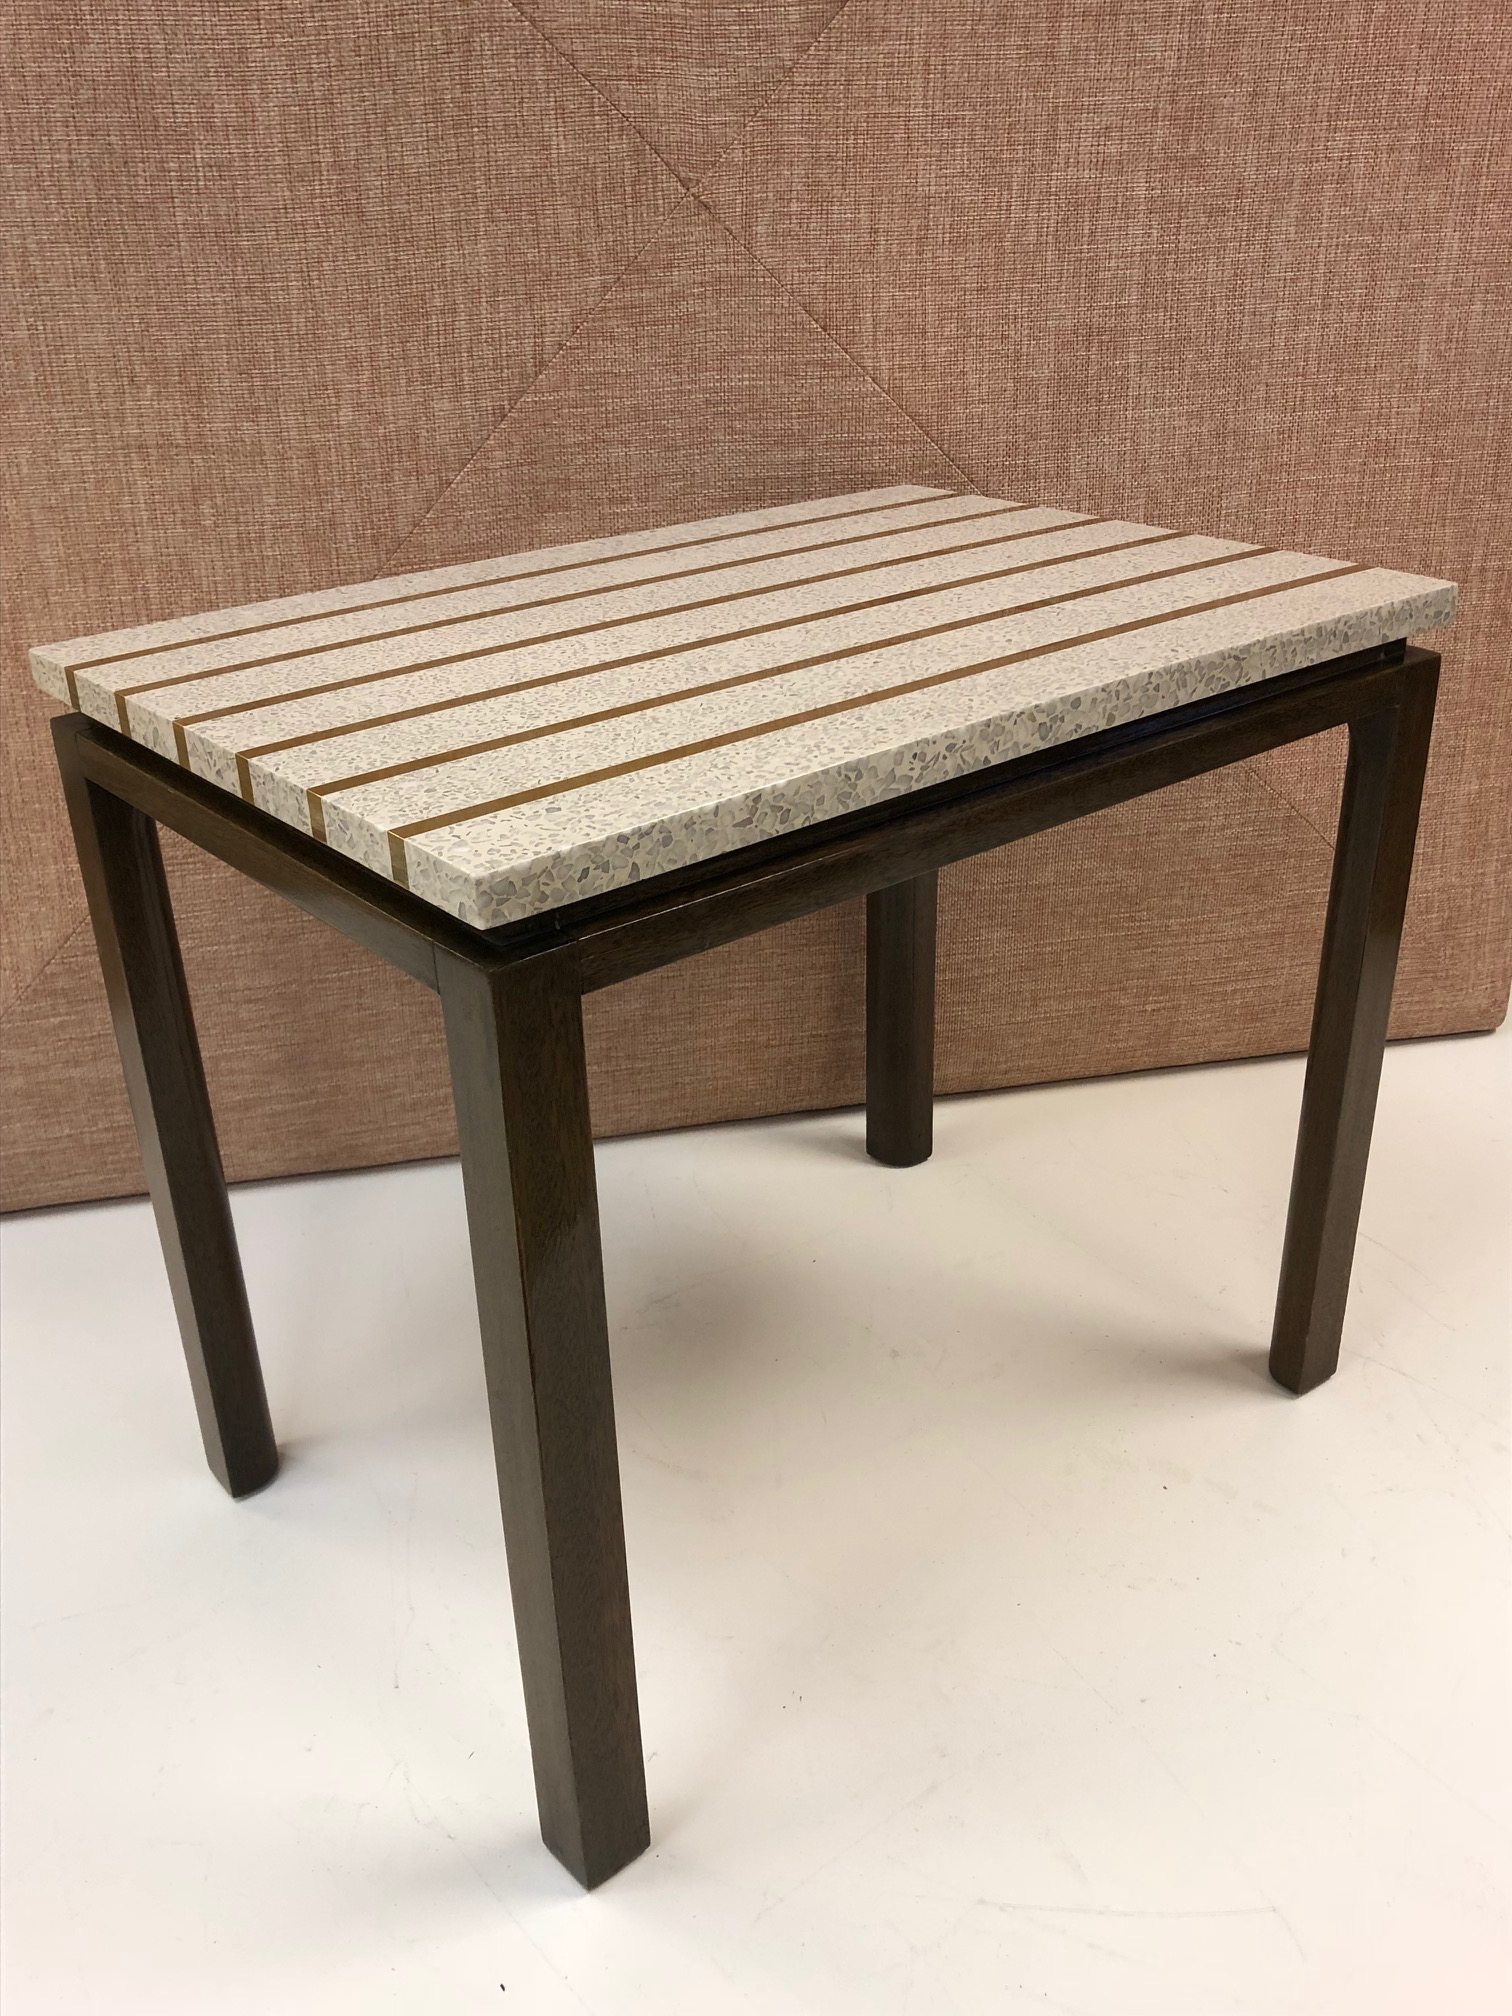 Terrazzo Top Table By Harvey Probber. Table Top Has Brass Inlay And The  Frame Is